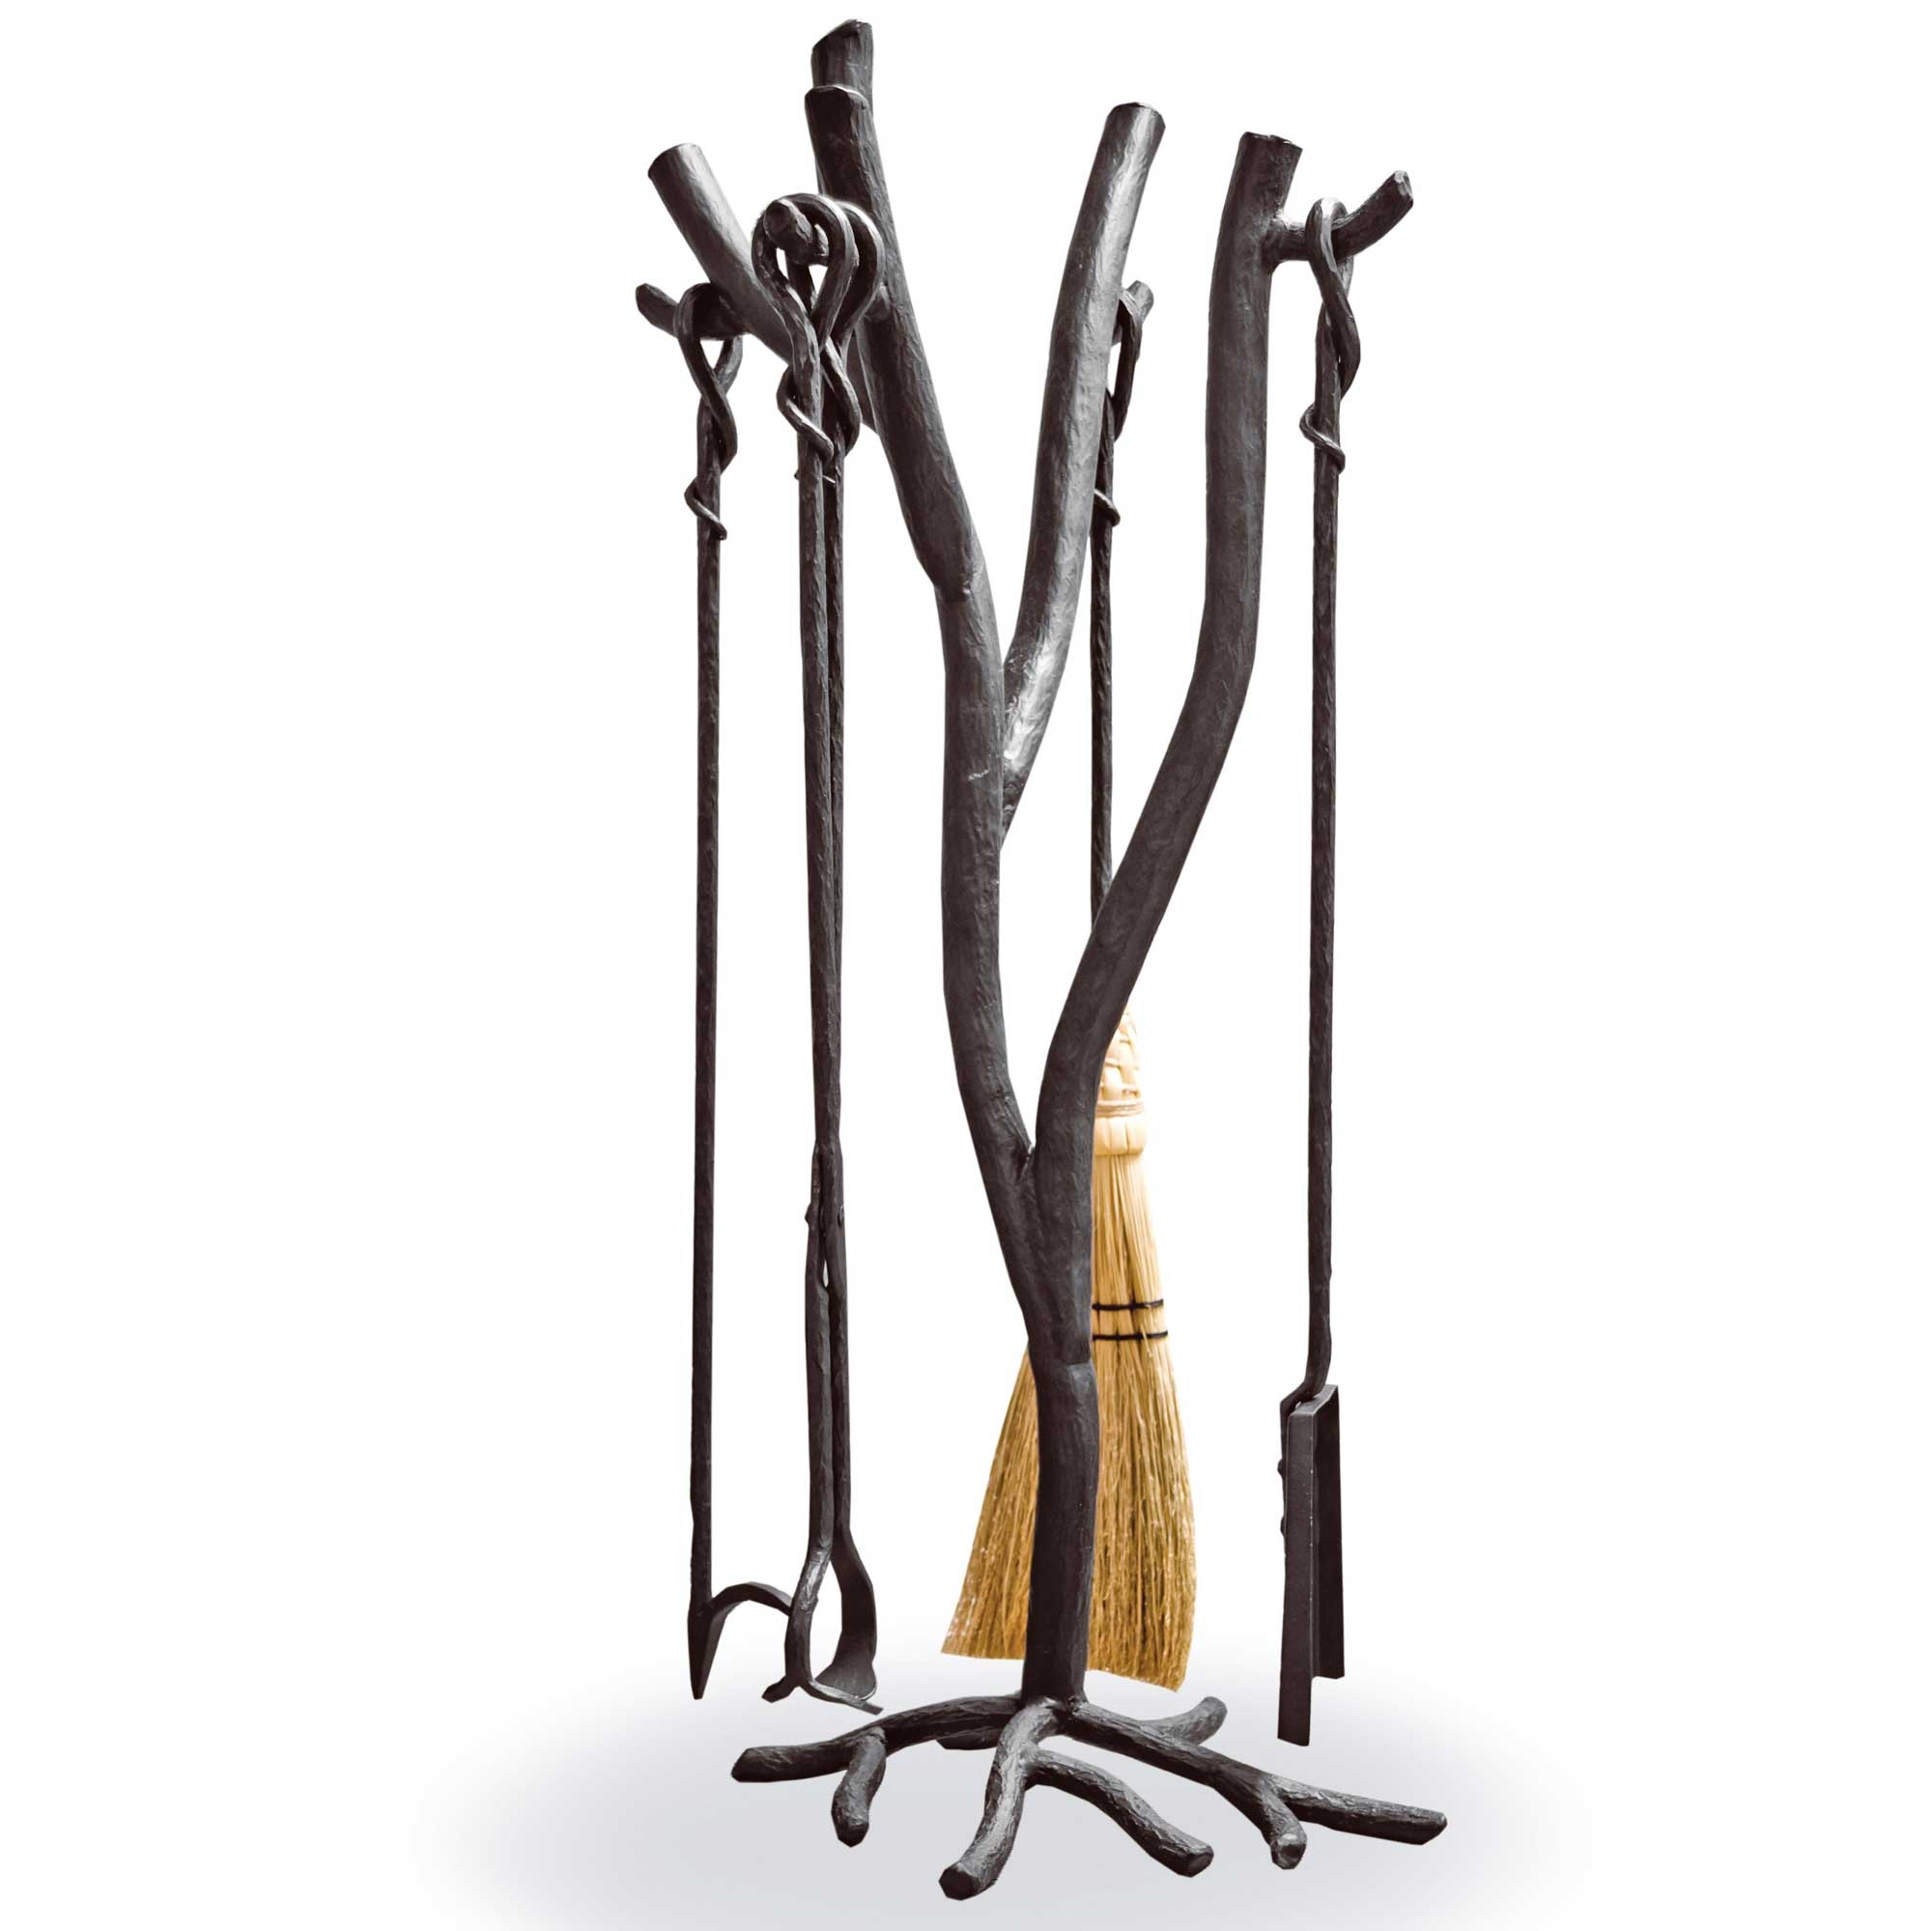 The Hand-Forged South Fork Fireplace Tool Set includes a straw broom